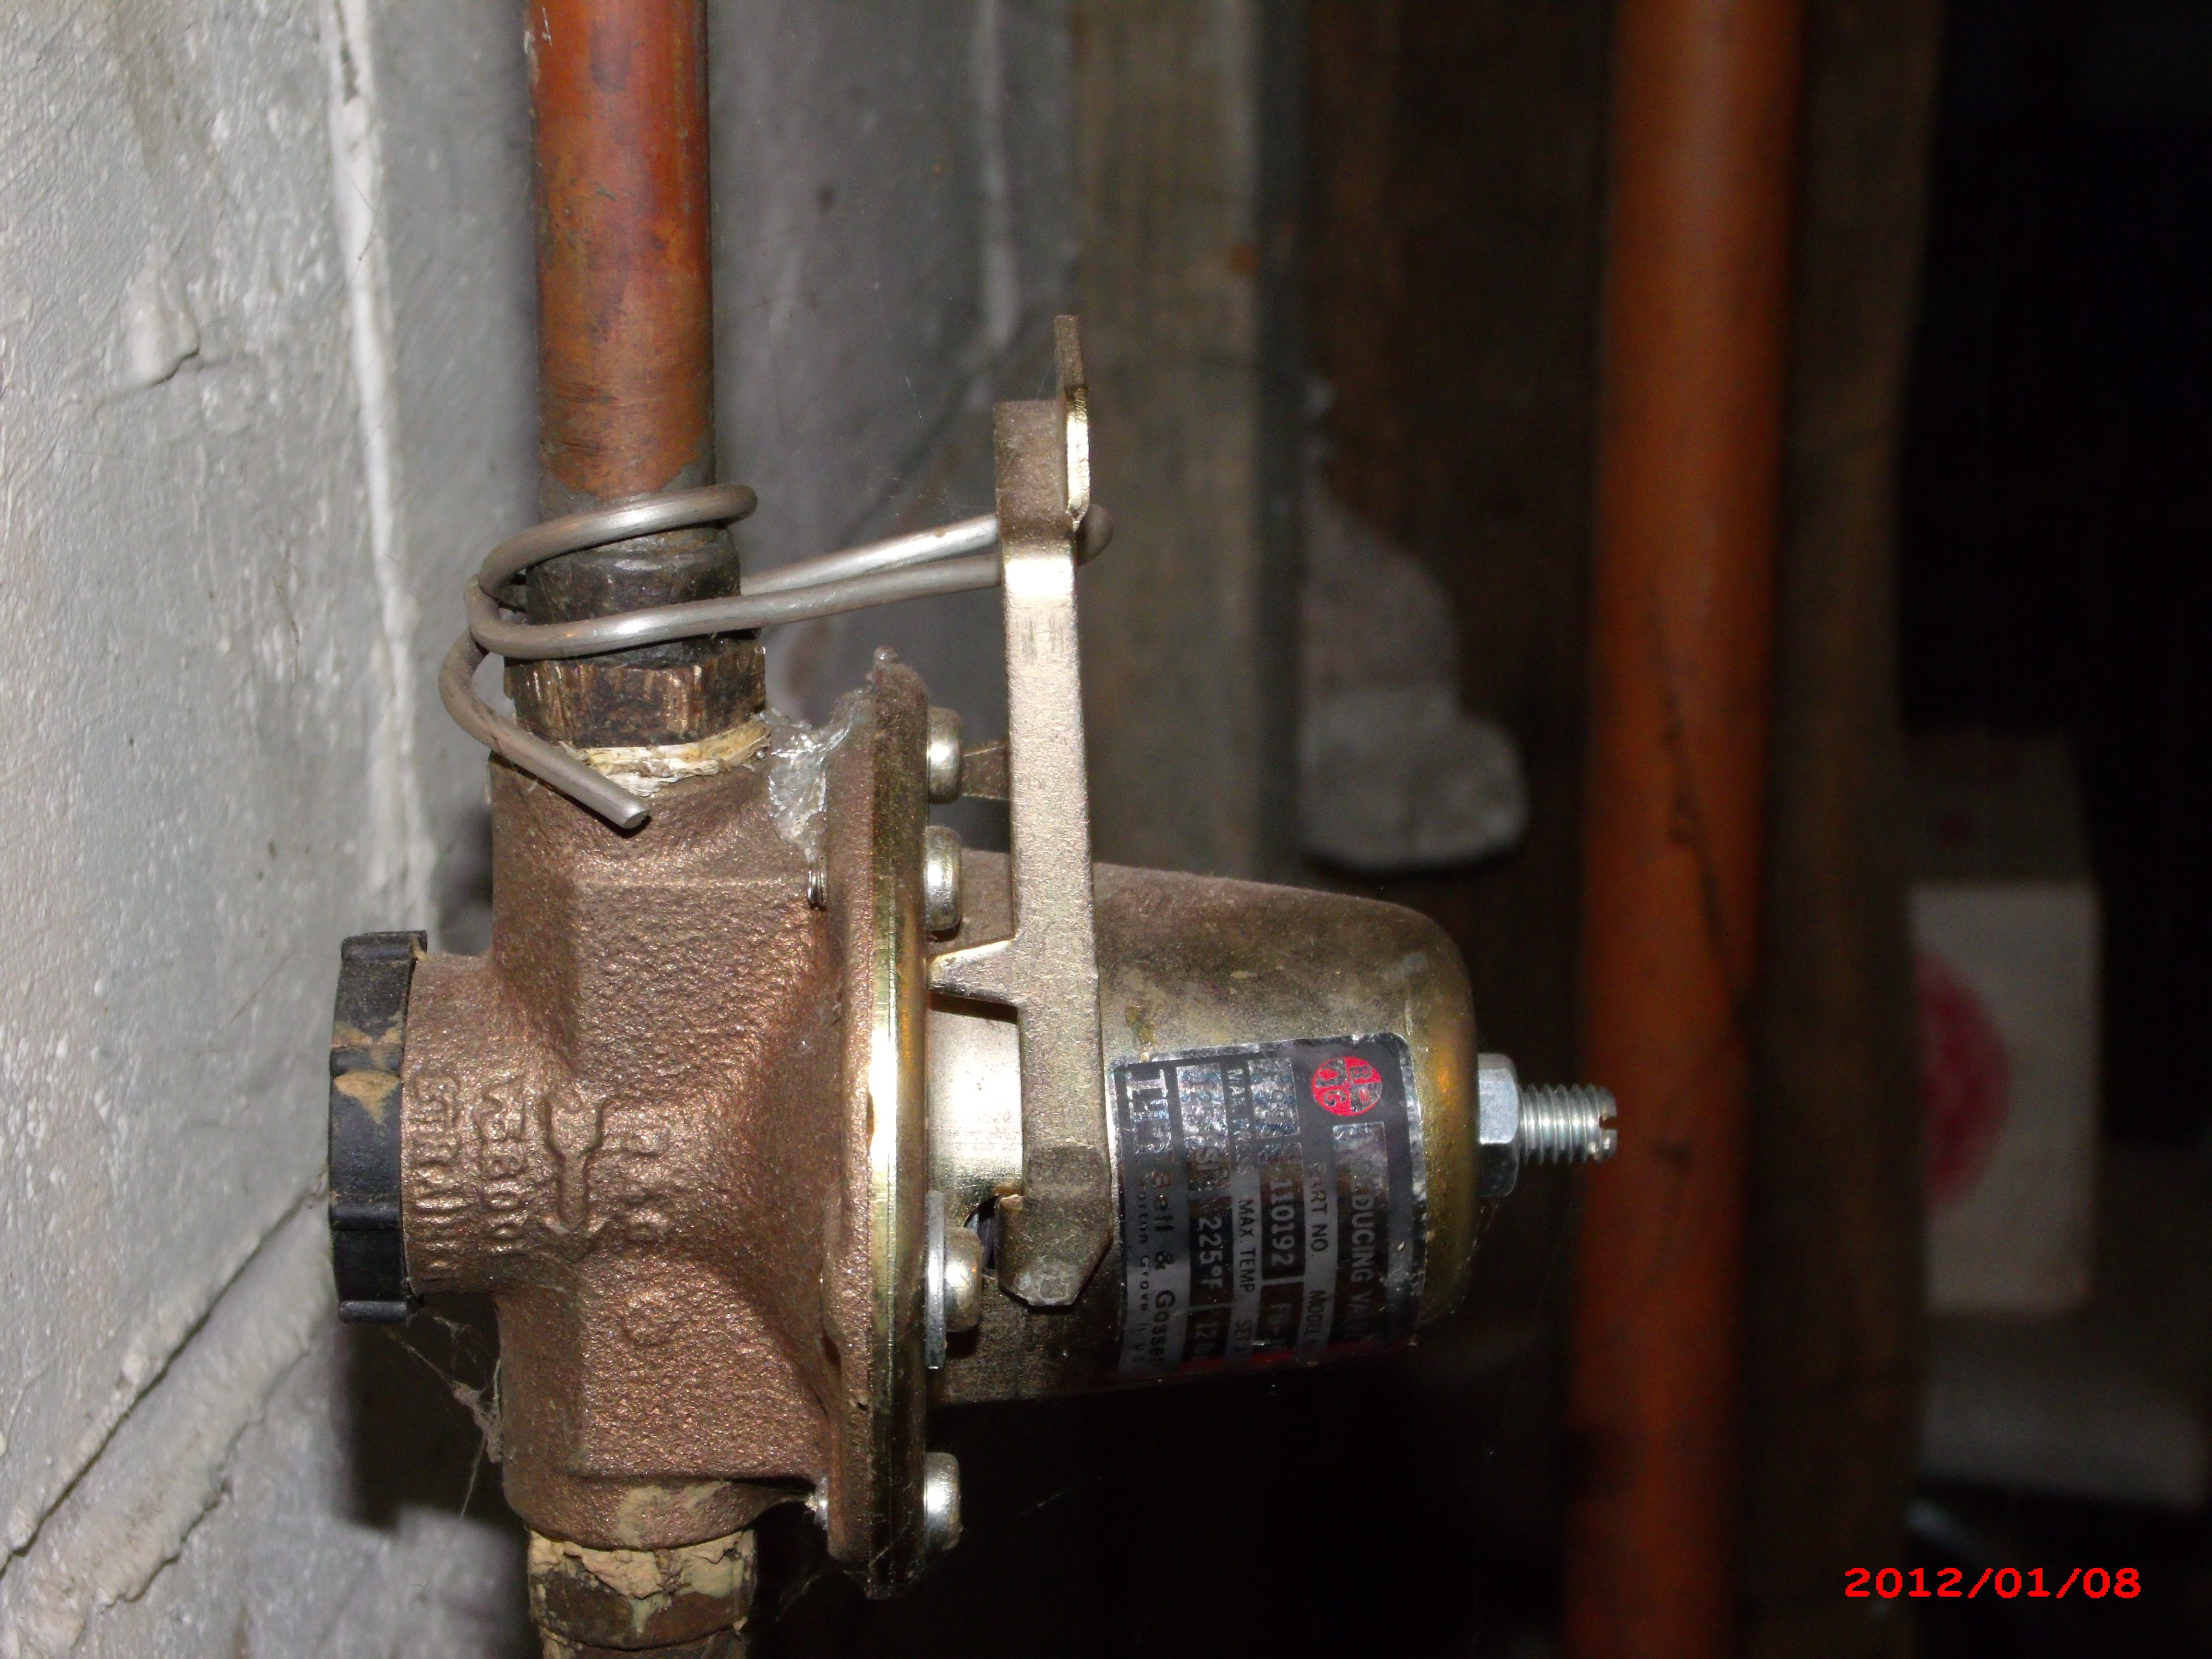 have a hot water baseboard heating system. The zone valves #C30809